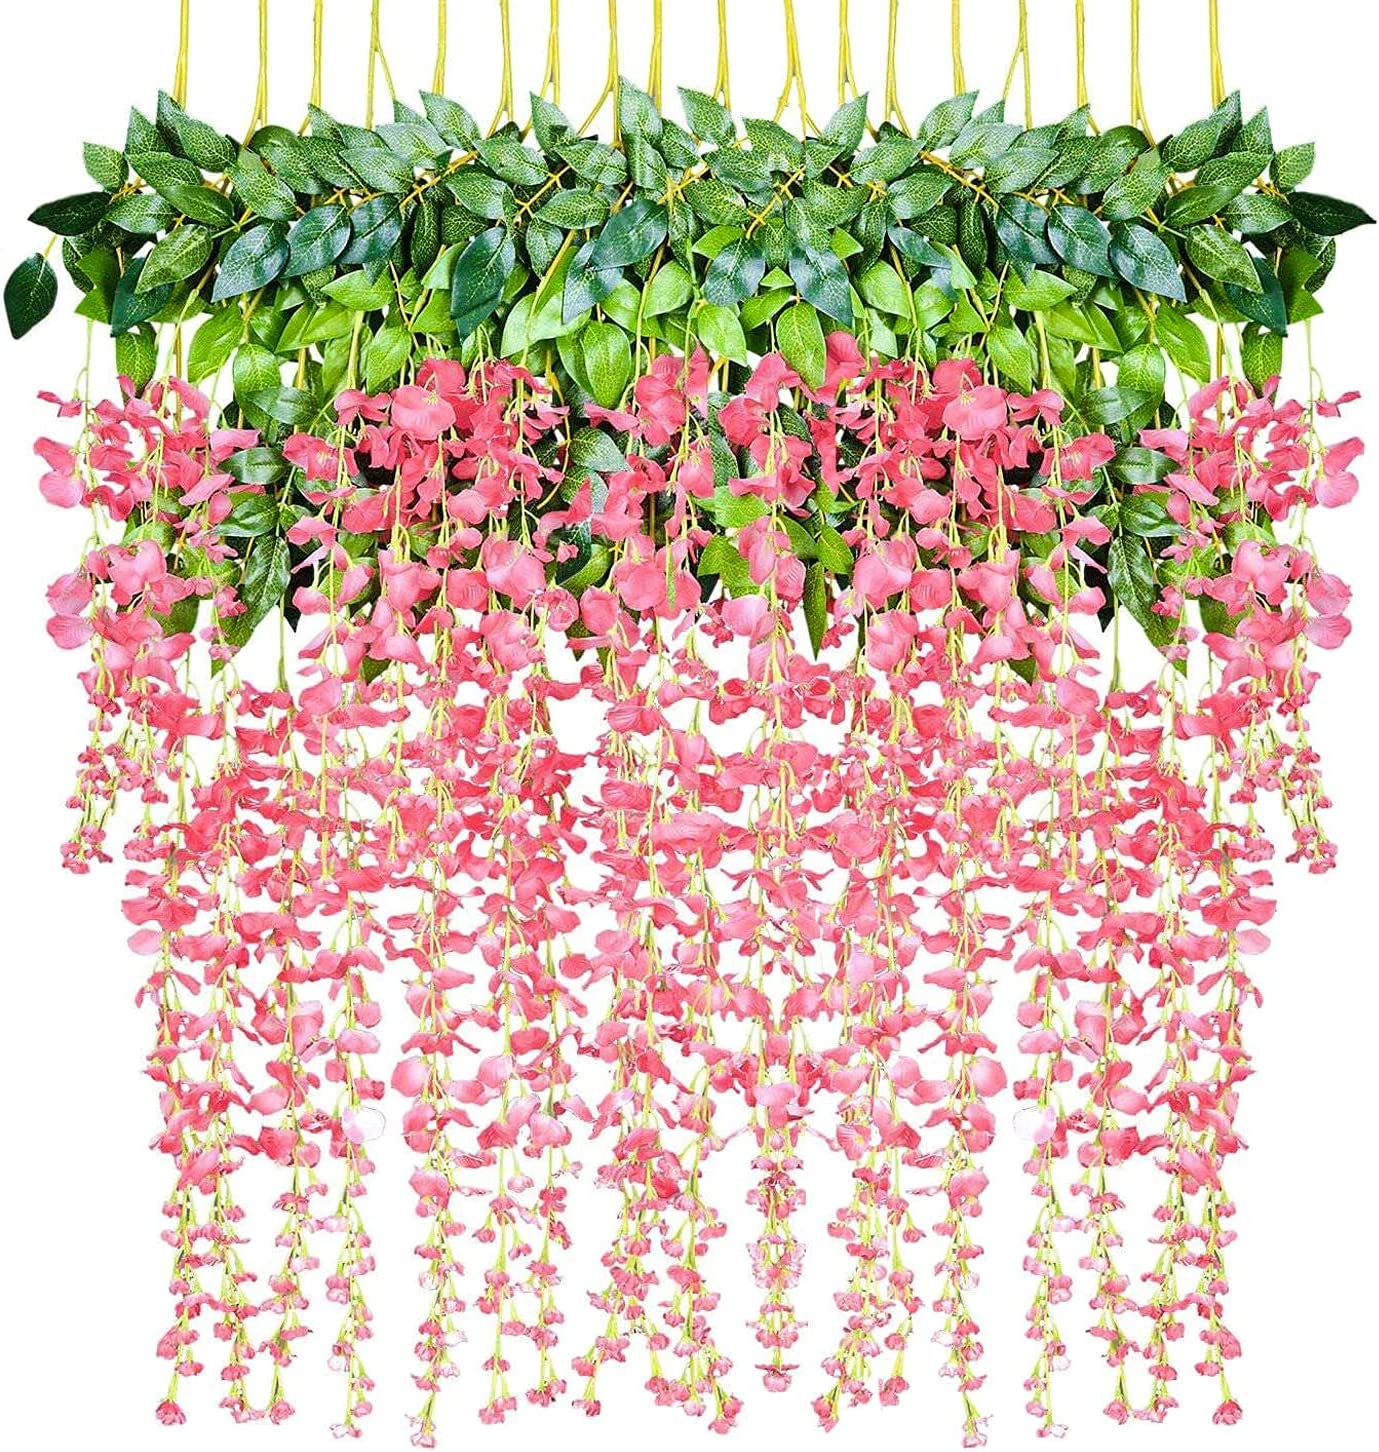 DearHouse 6 Pieces 3.6 Feet Artificial Garland Artific Wisteria low-pricing Overseas parallel import regular item